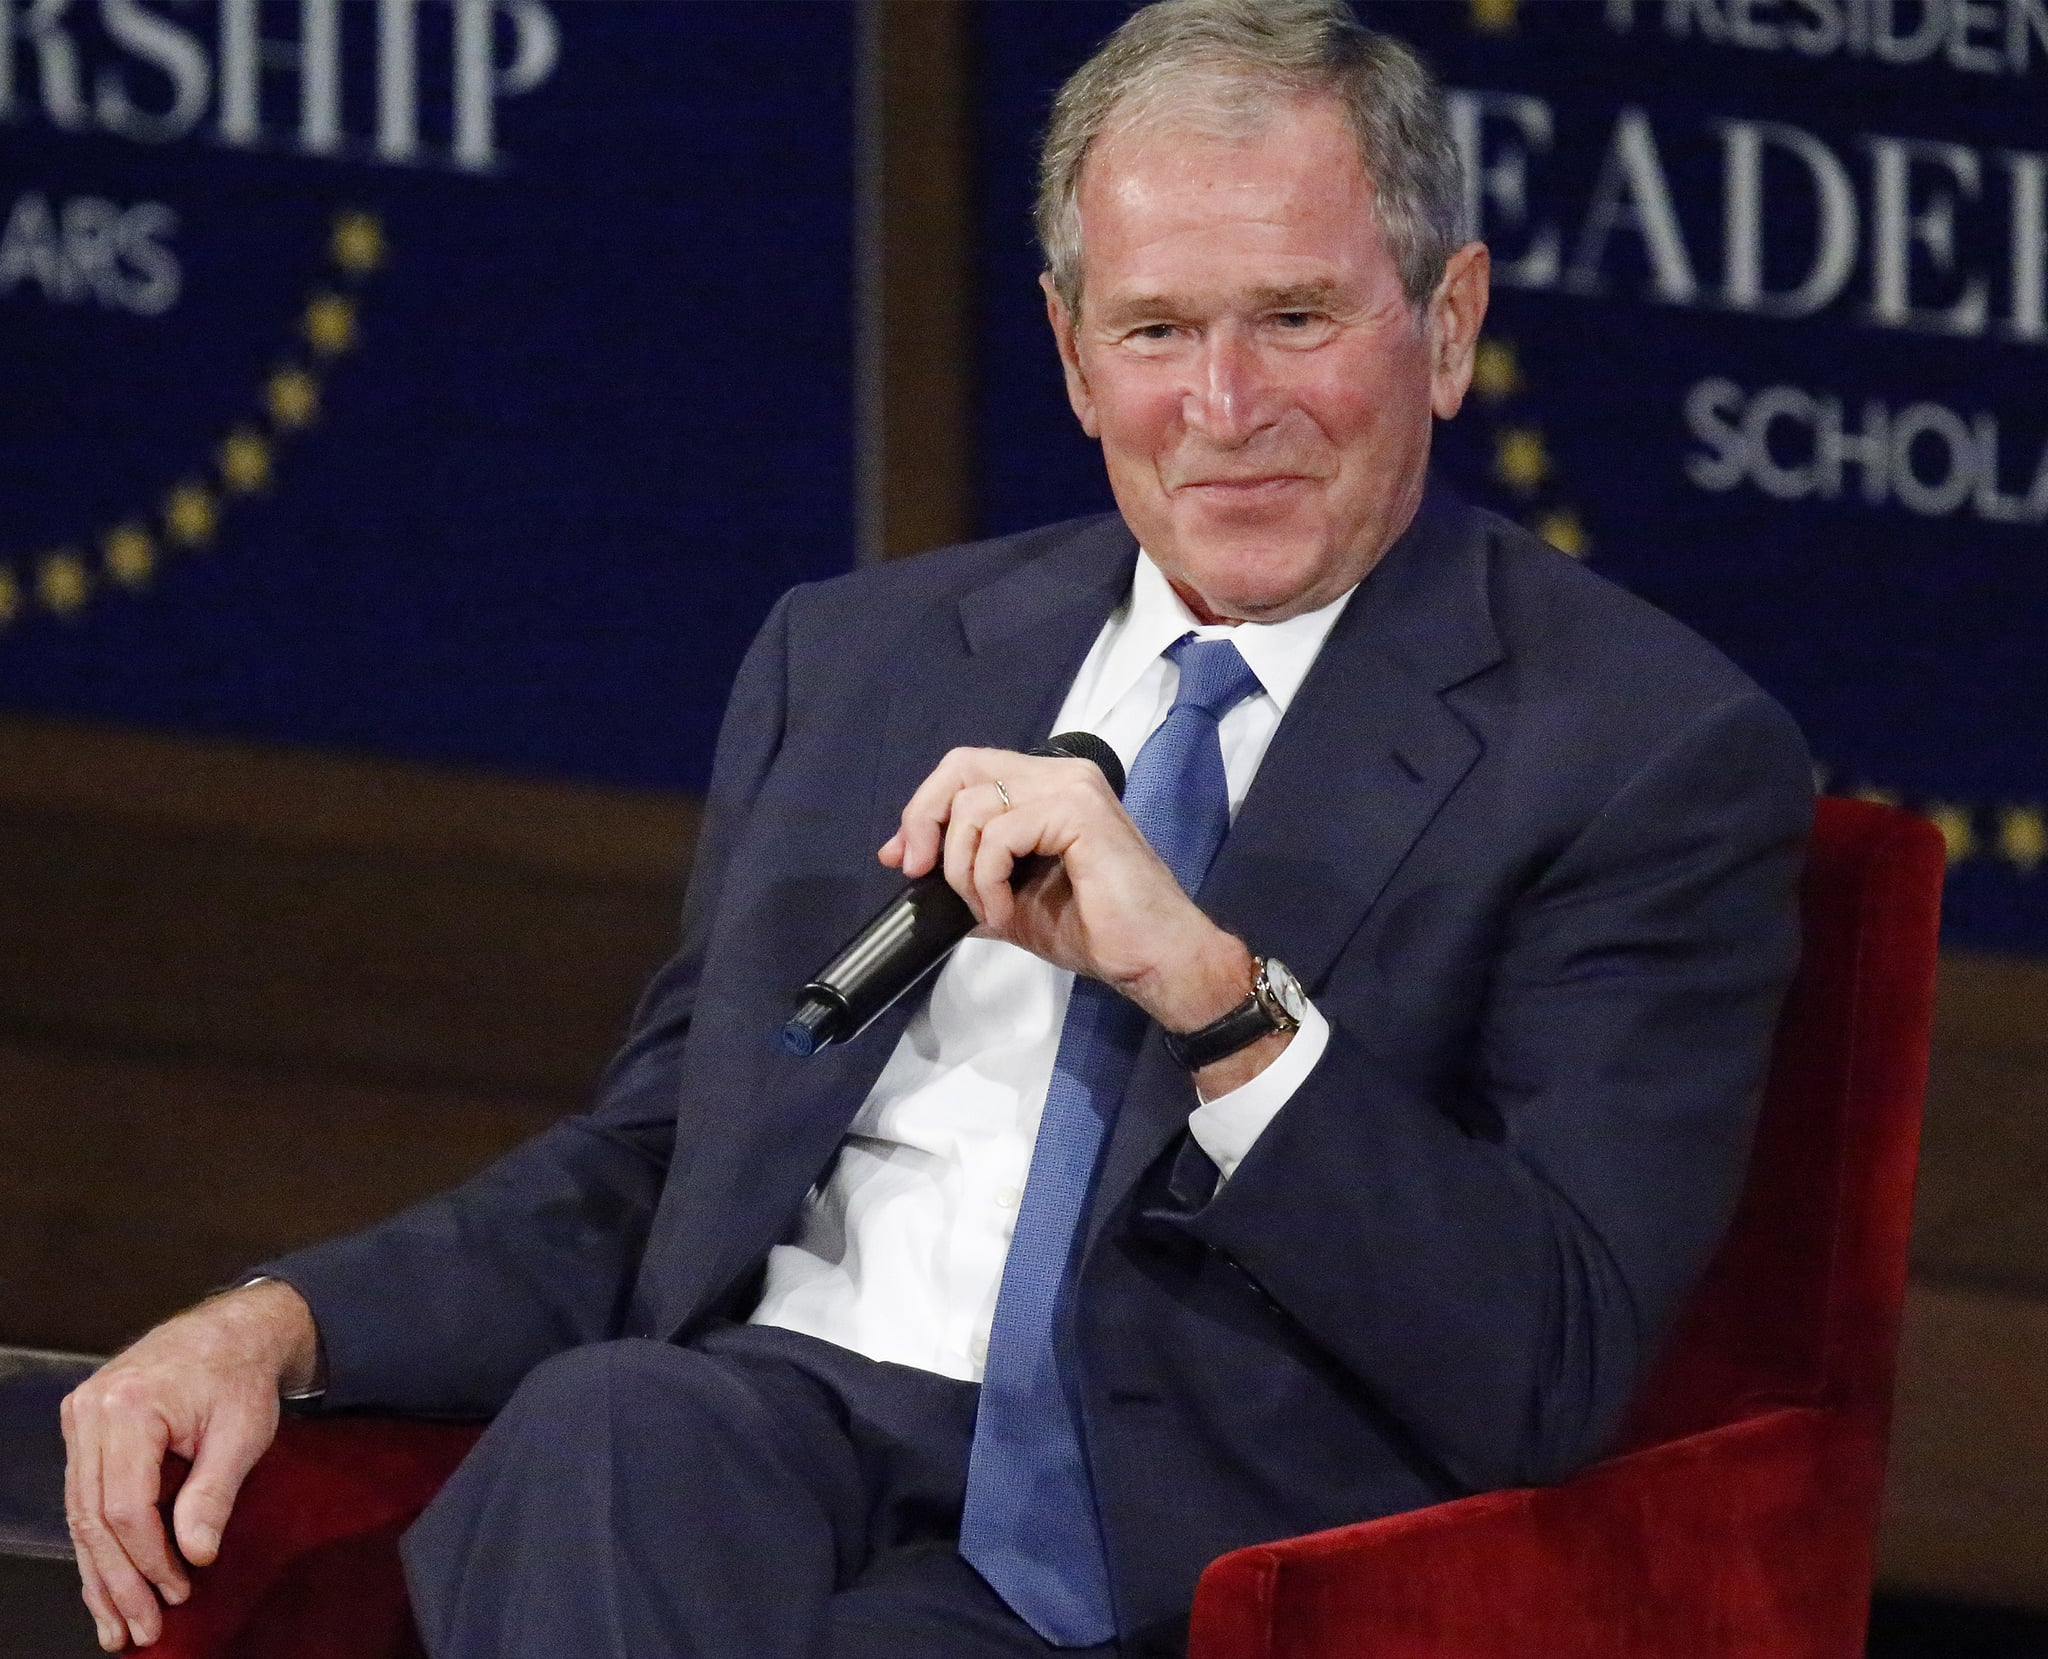 DALLAS, TX - JULY 13: Former U.S. President George W. Bush responds with a smile after making a joke while answering a question at the Presidential Leadership Scholars graduation ceremony at the George W. Bush Institute on July 13, 2017 in Dallas, Texas. The organization brings together leaders from non-profits, the military and public and private sectors for programs in leadership.  (Photo by Stewart  F. House/Getty Images)